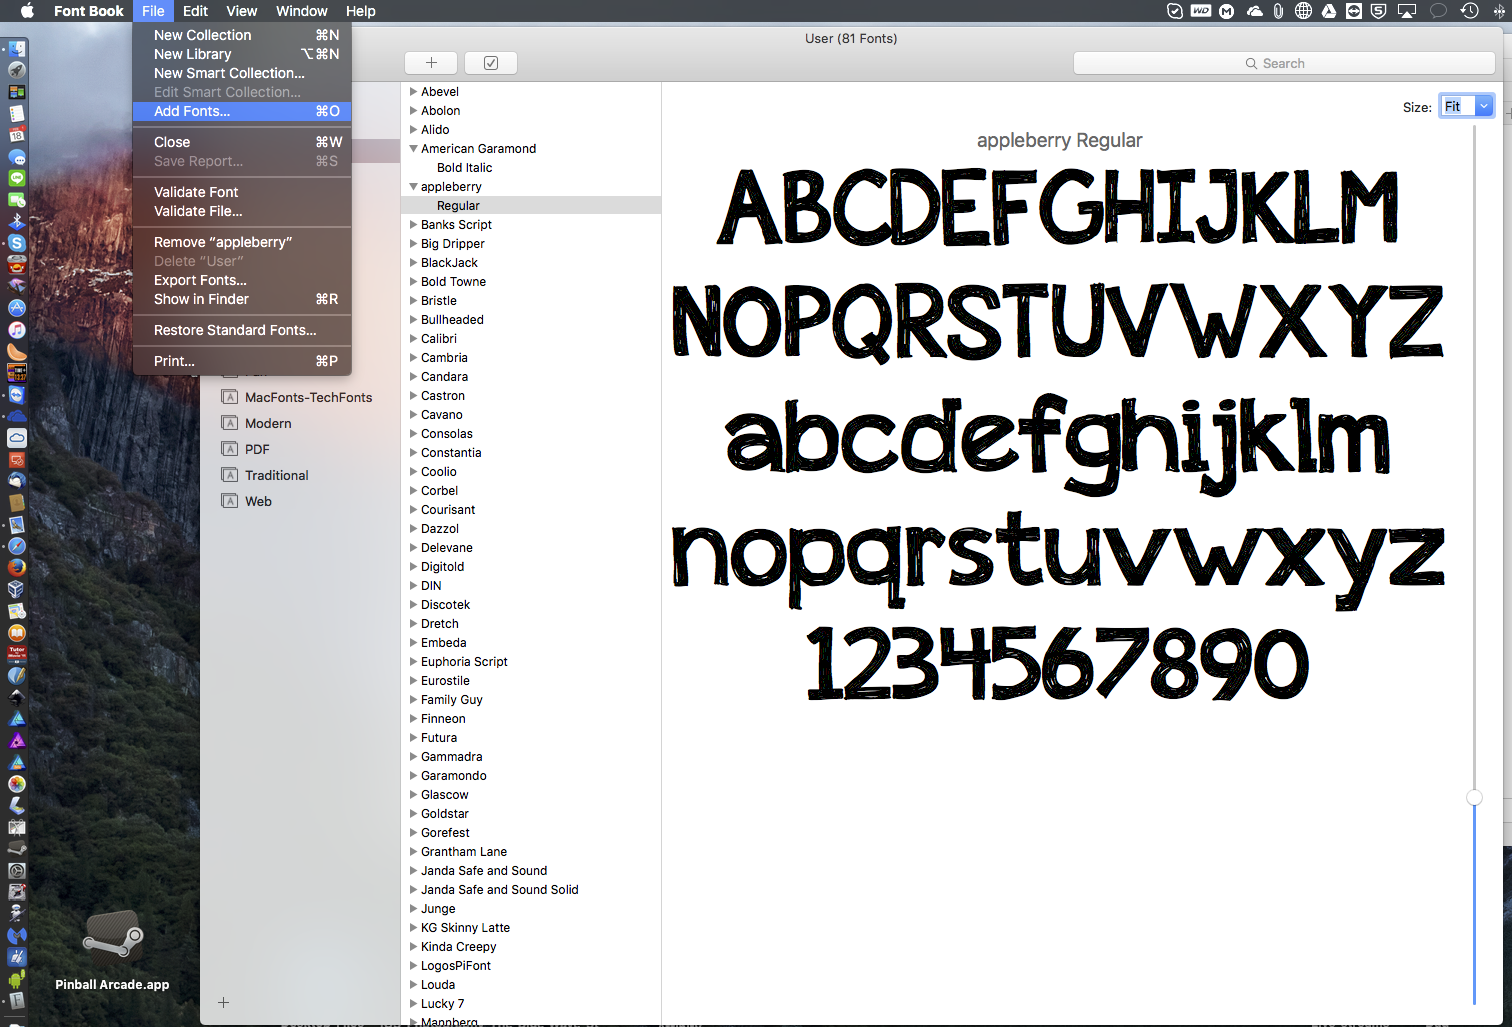 How to import additional fonts - Affinity on Desktop